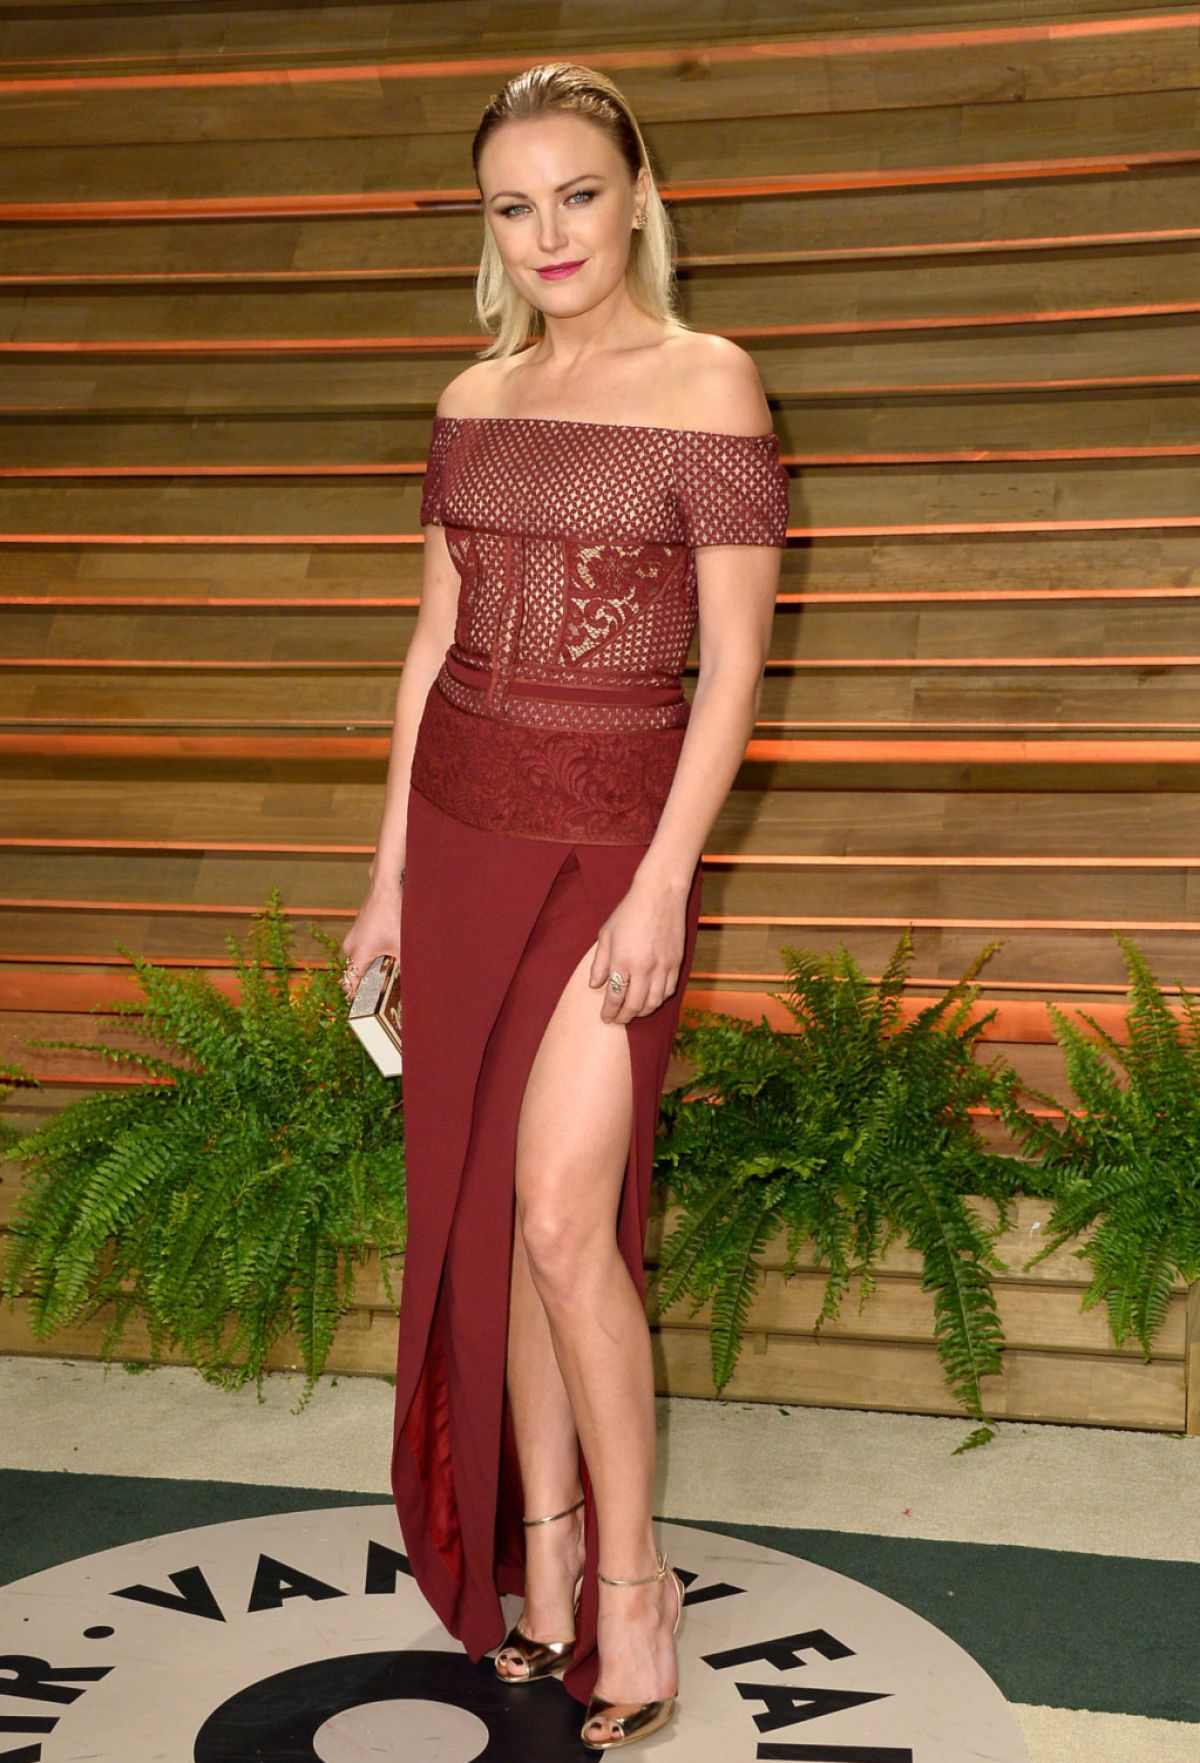 MALIN AKERMAN at Vanity Fair Oscar Party in Hollywood